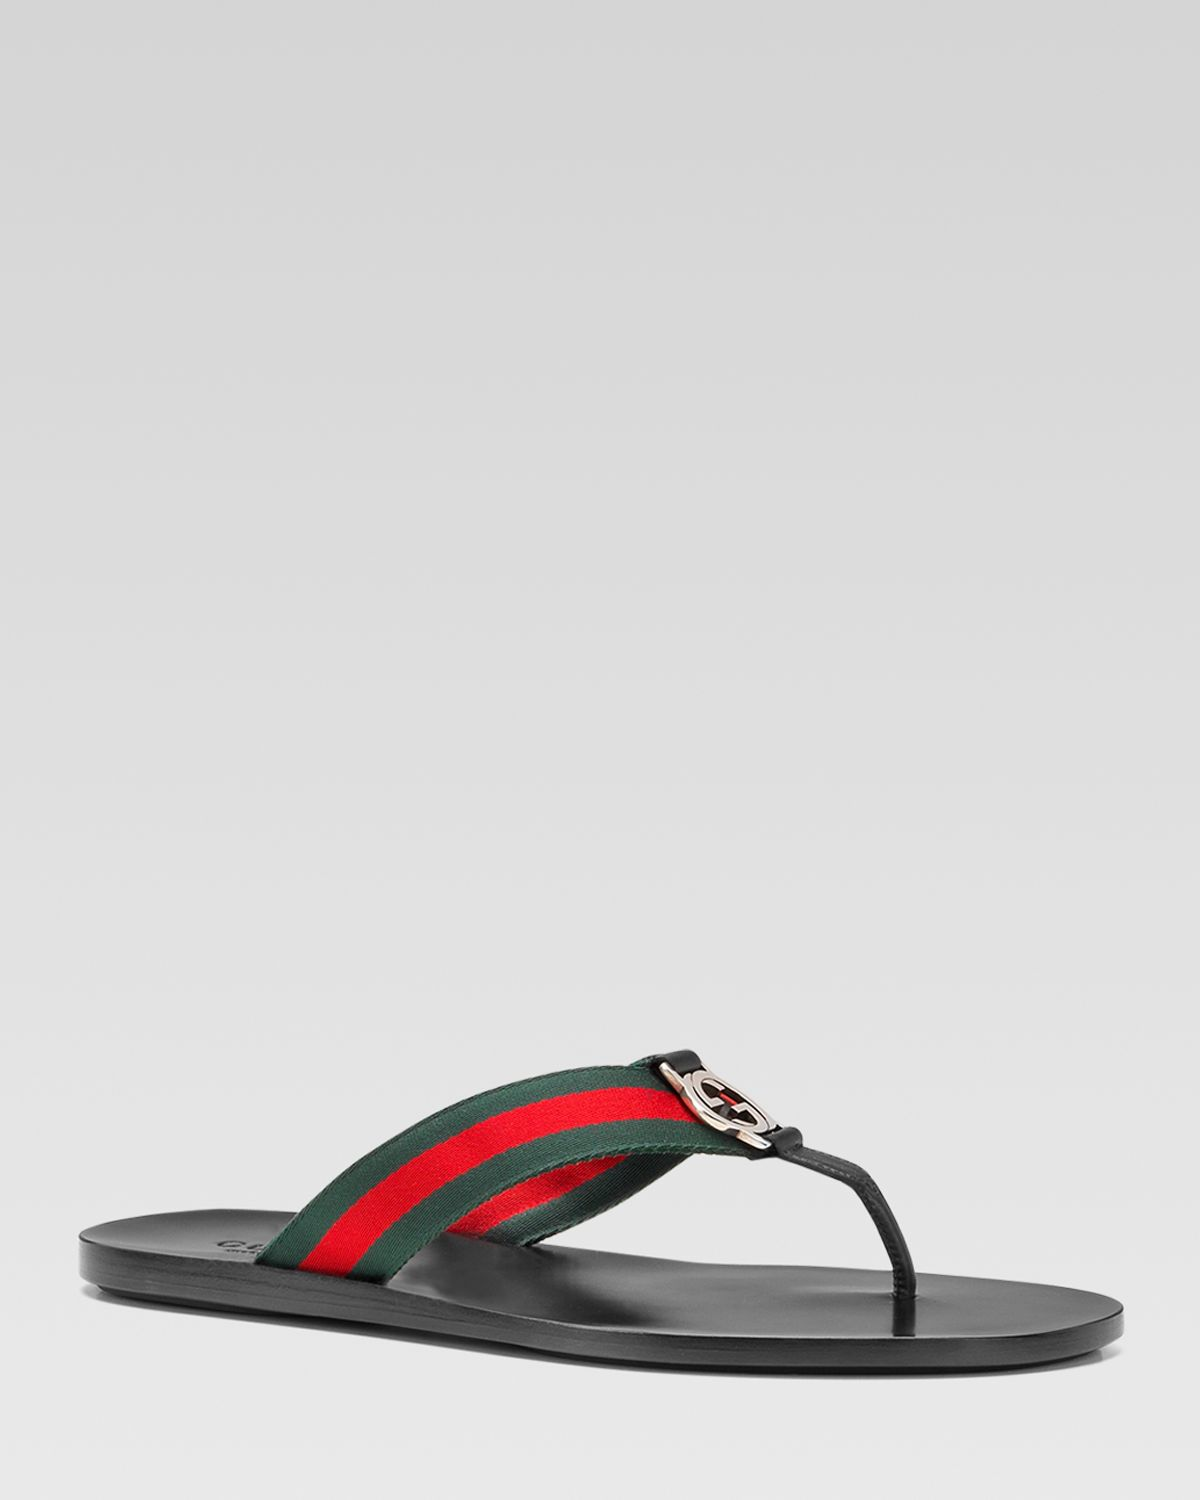 c58949976c3a0 Lyst - Gucci Gg Line Signature Web Thong Sandals in Black for Men